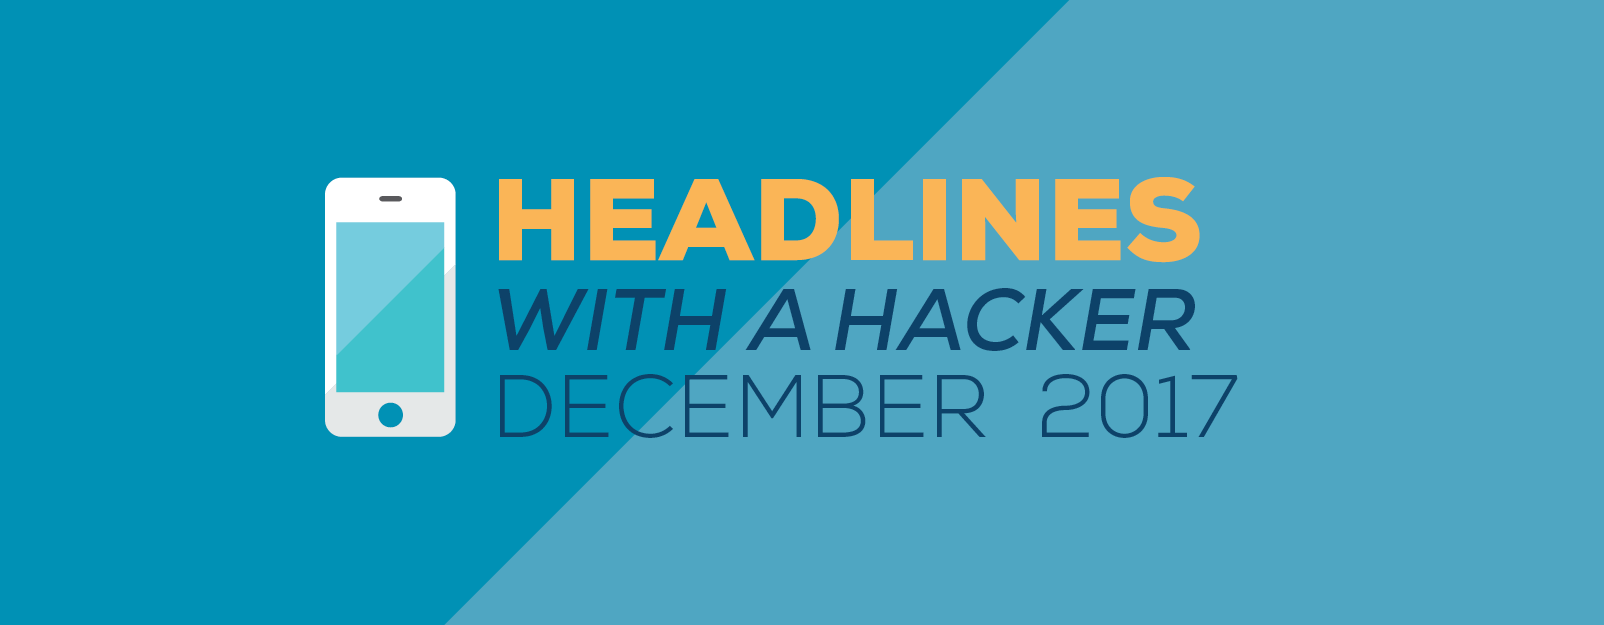 "Graphic image saying, ""Headlines with a Hacker December 2017"""